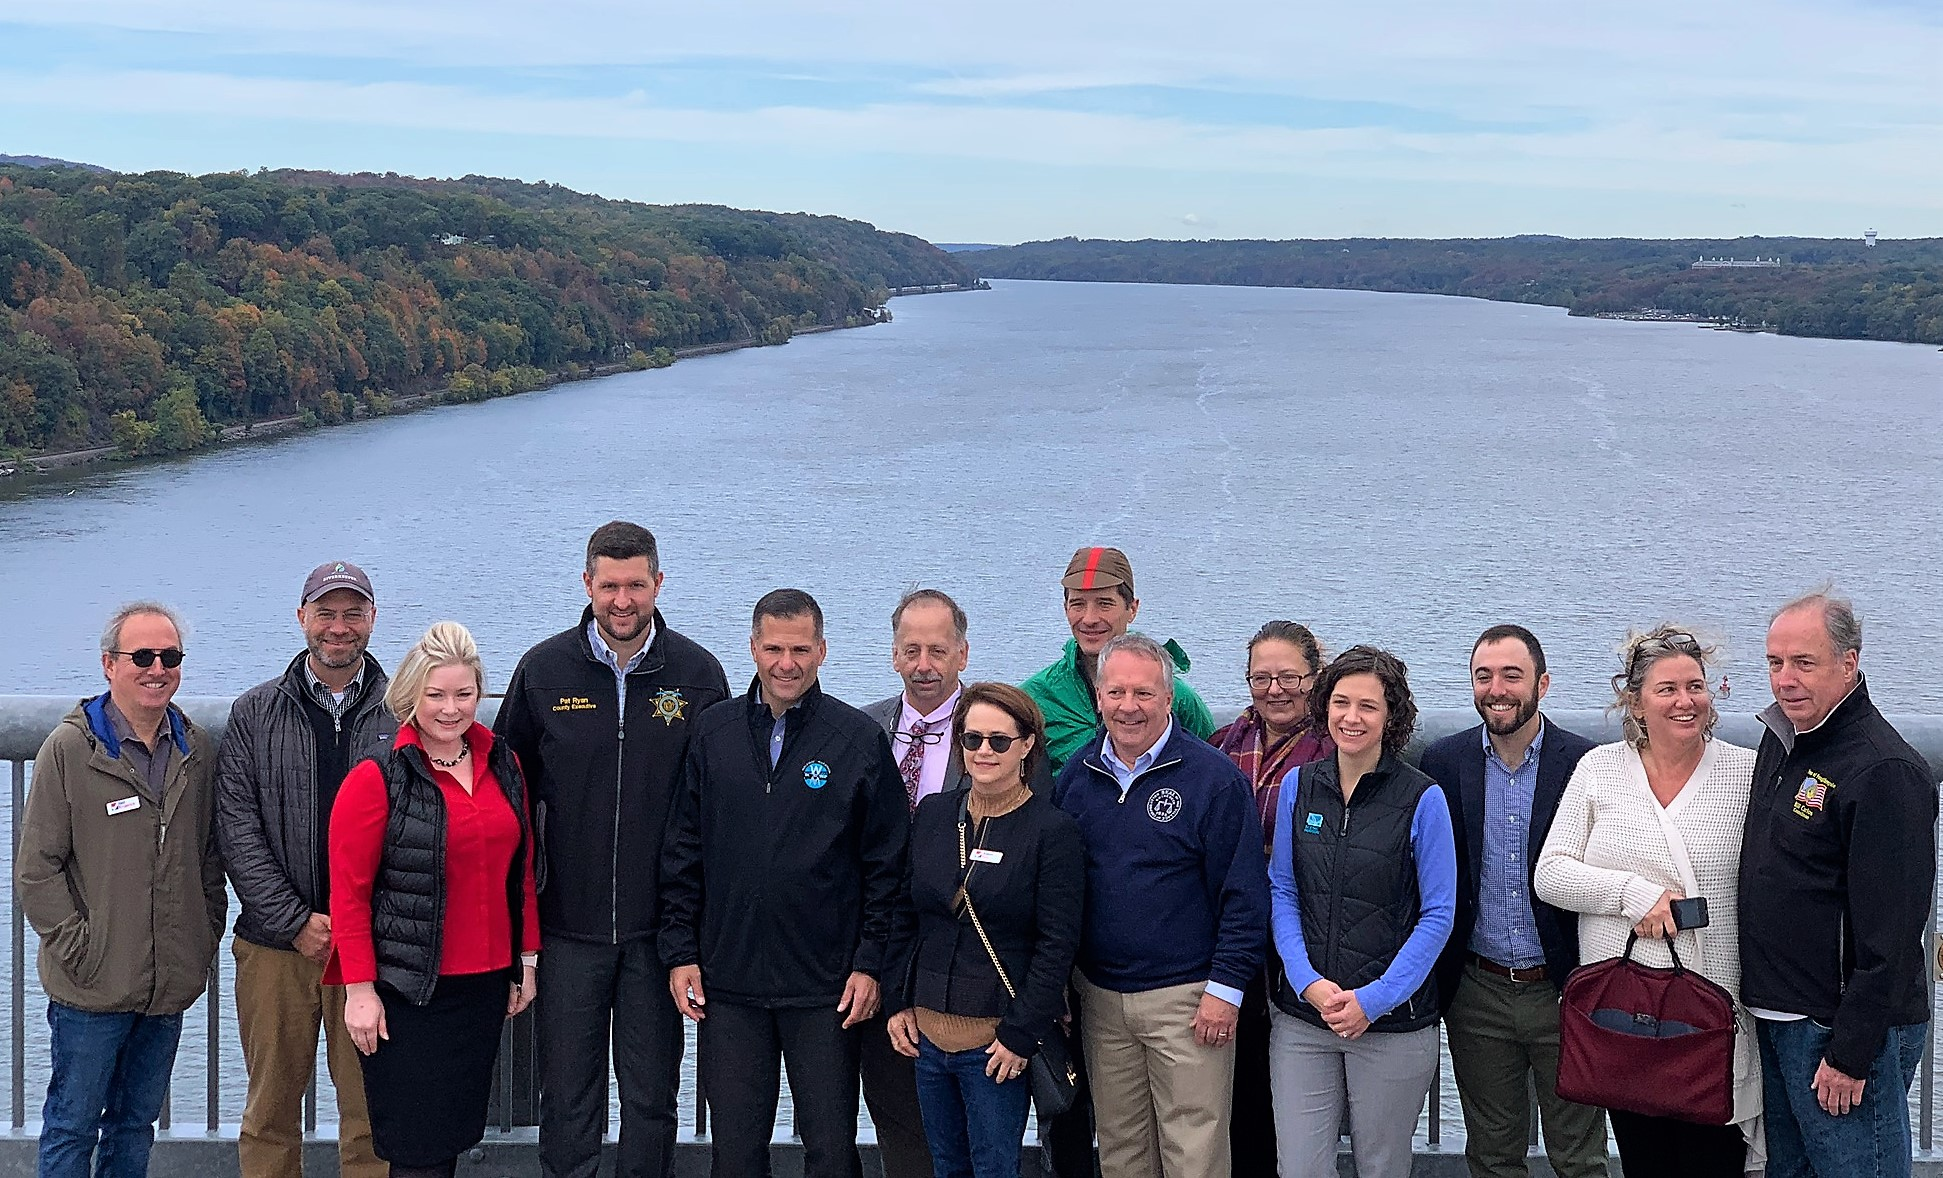 Picture of Hudson River cleanup supporters with Hudson River in the background